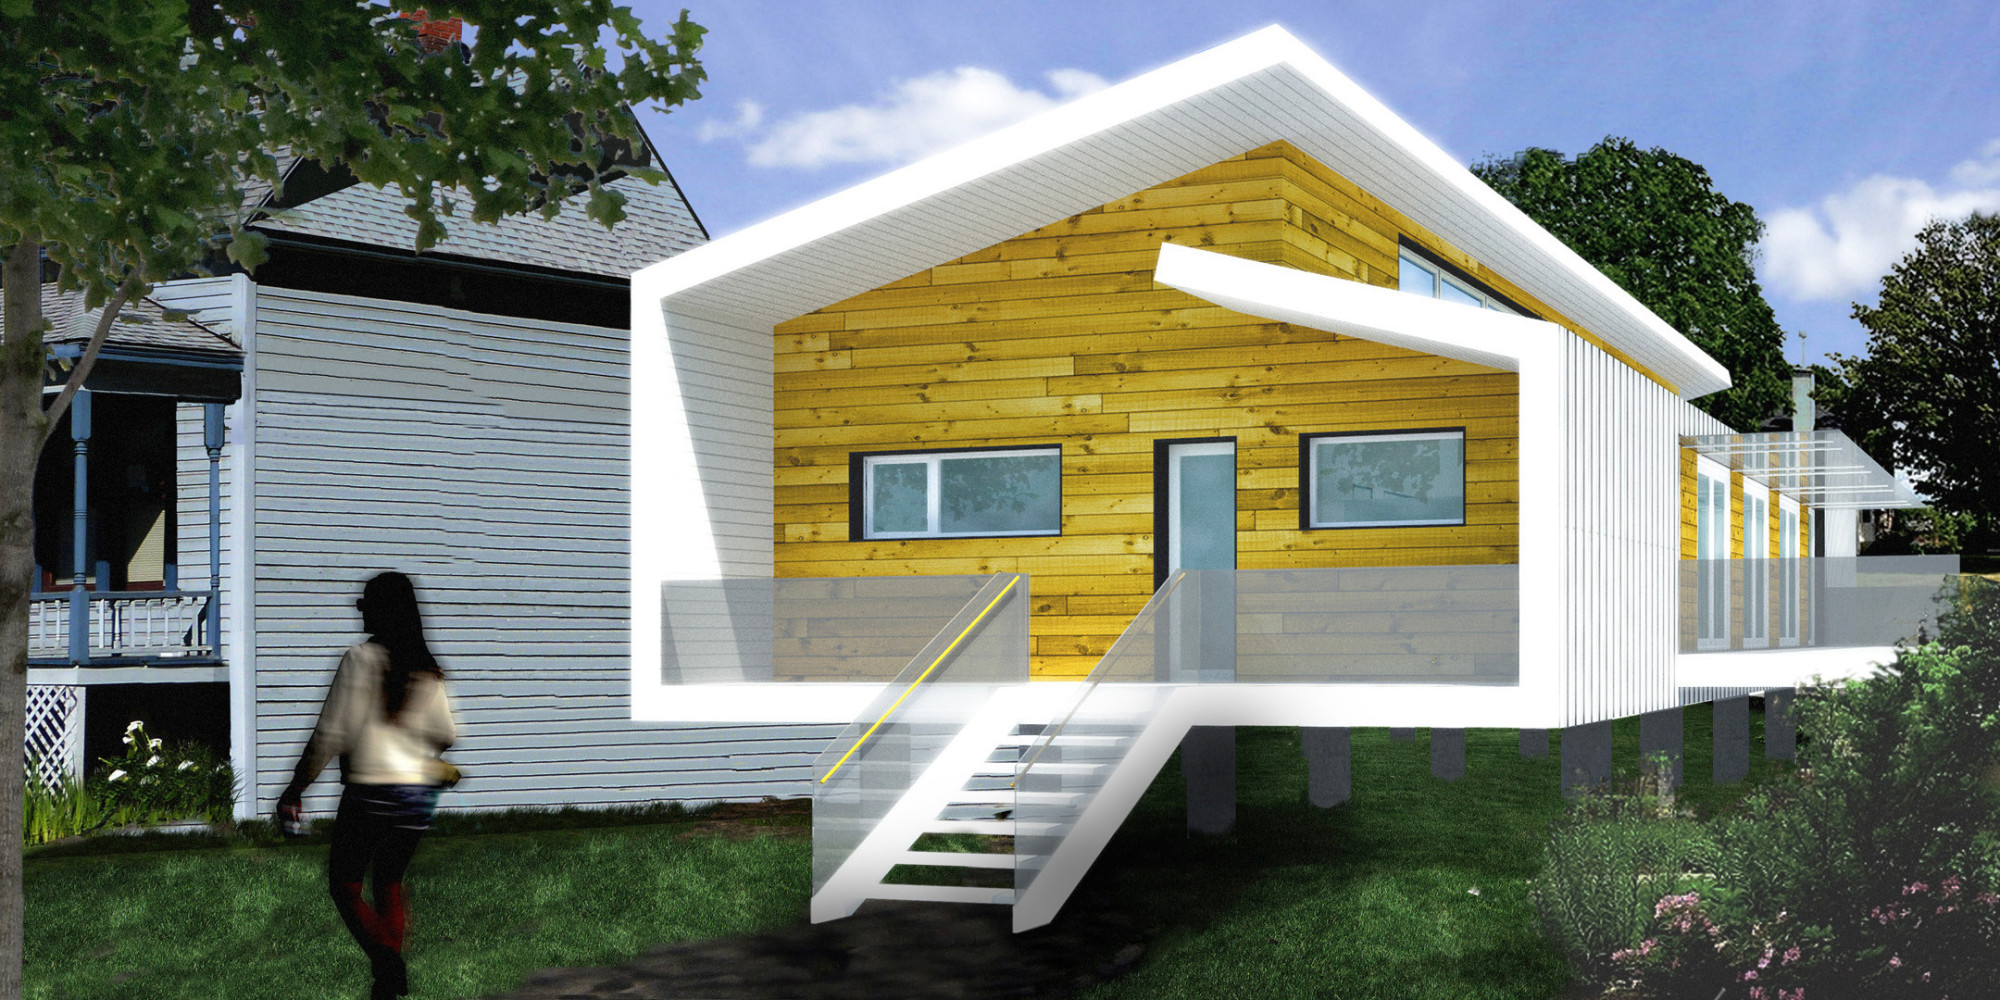 Brad pitt 39 s charity to build 50k home for hurricane sandy for Build a house for under 50k